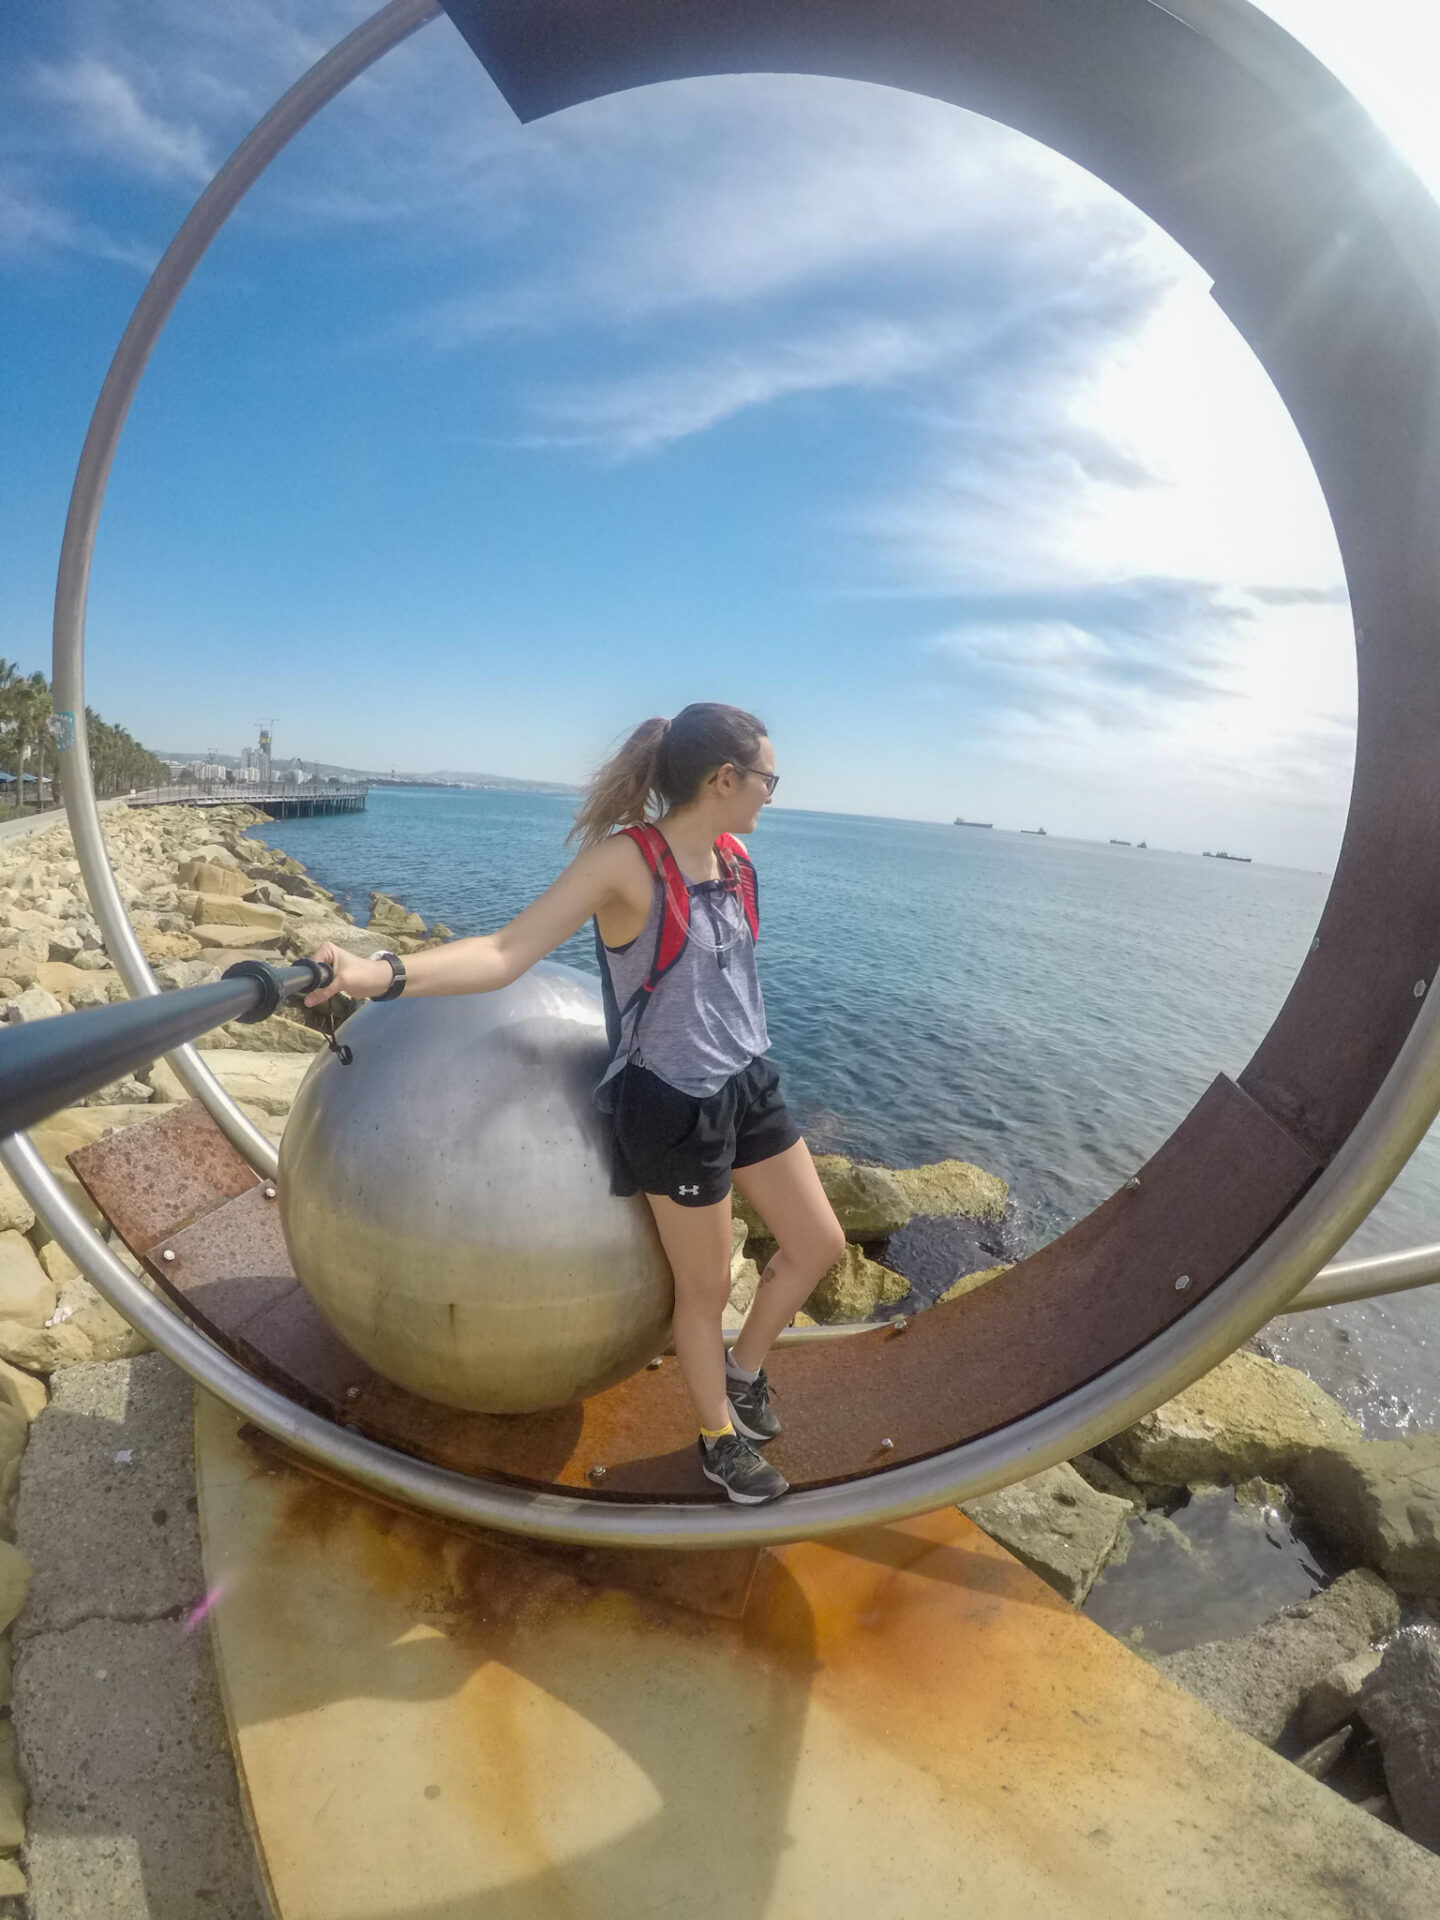 Girl on beach in limassol in circle statue.